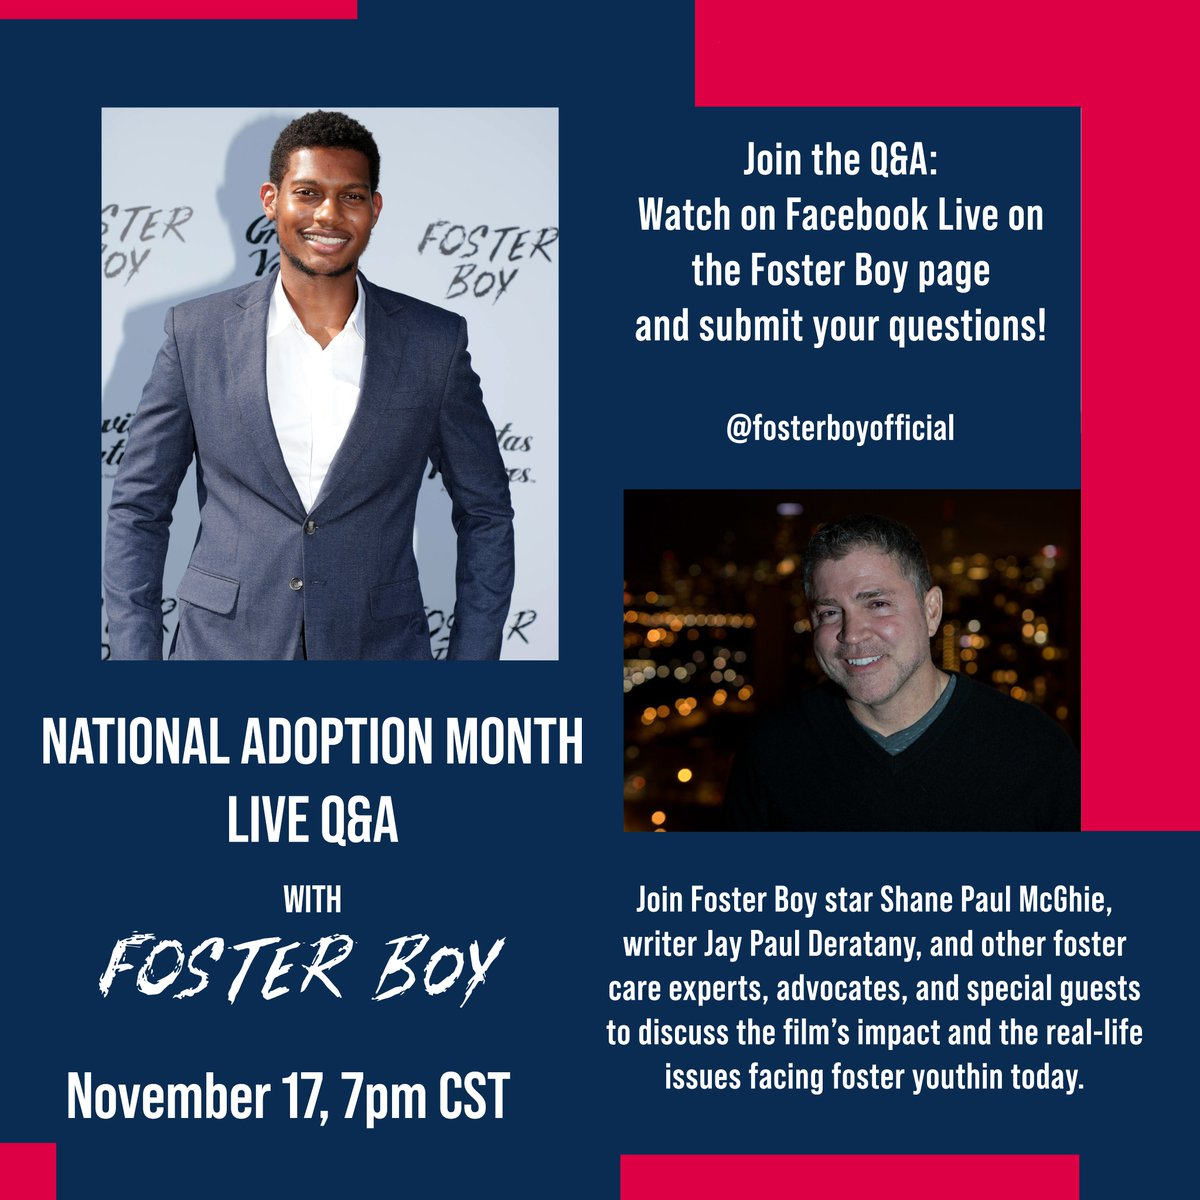 In honor of #NationalAdoptionMonth, that we are hosting a LIVE Q&A on our Facebook page! Join the film's writer  @deratany, members of the cast, & reform activists, on November 17th at 7pm CST to discuss the movie's inspiration and the real-life fight to #FixFosterCare.